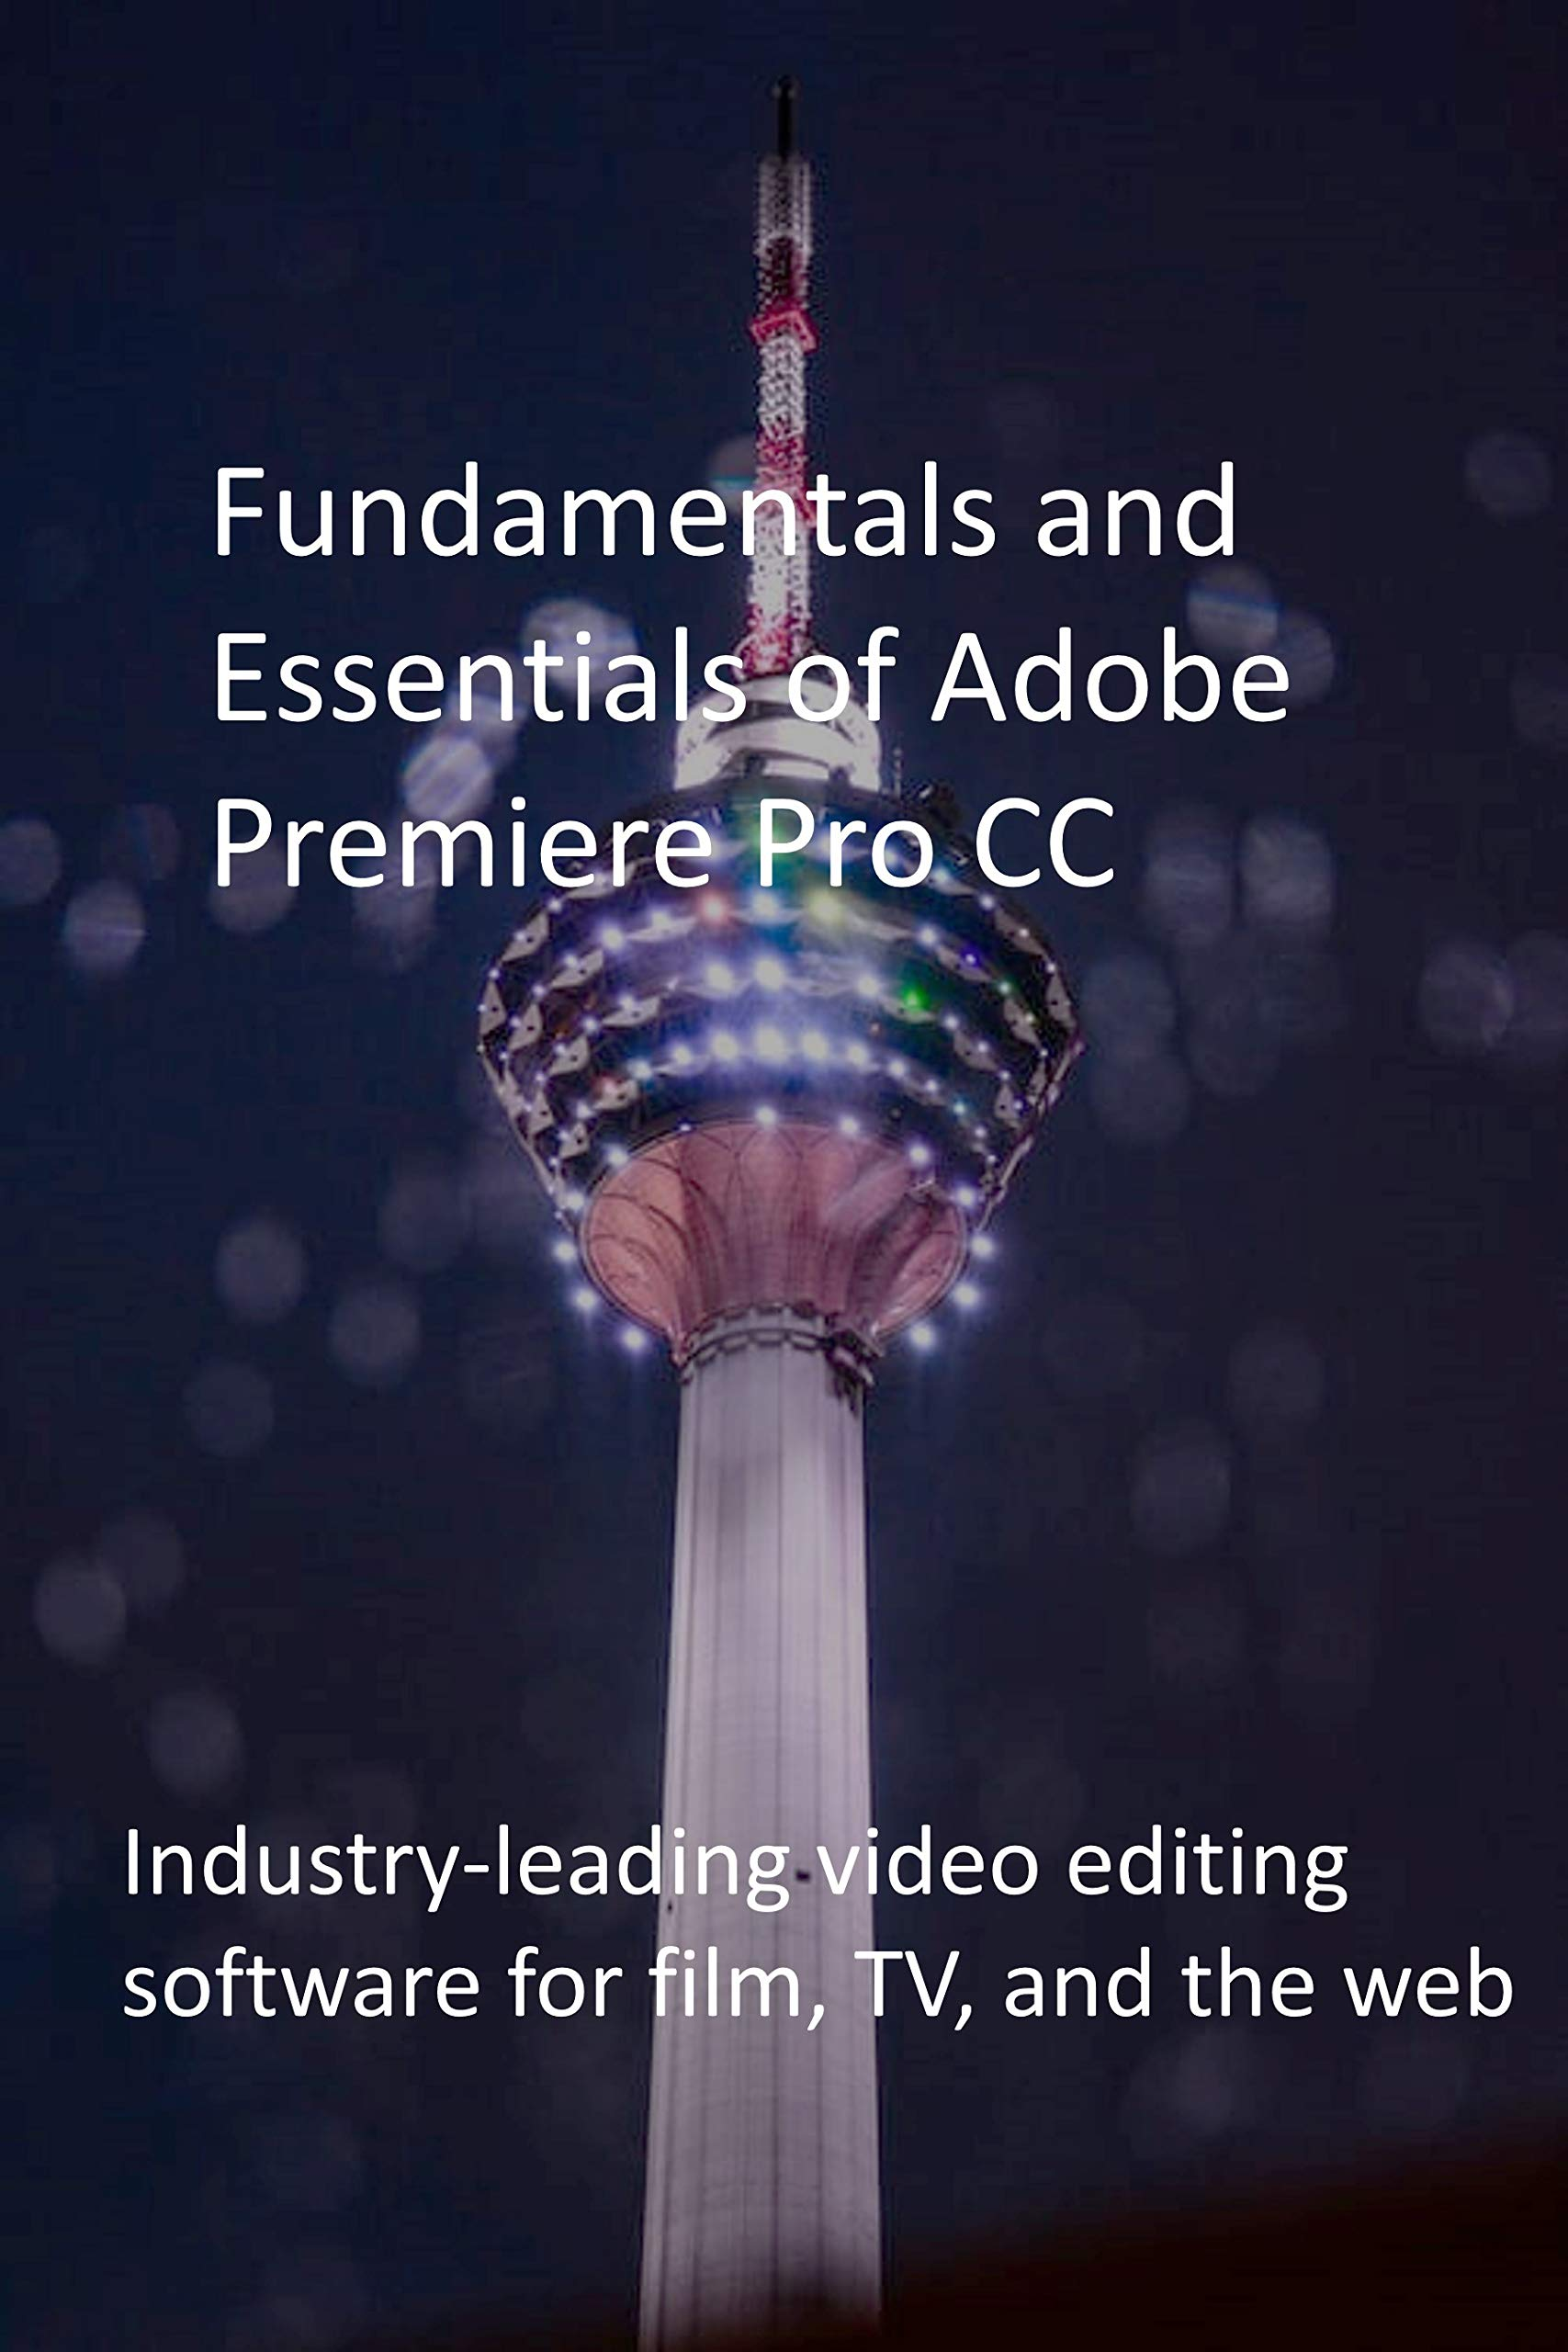 Fundamentals and Essentials of Adobe Premiere Pro CC: Industry-leading video editing software for film, TV, and the web